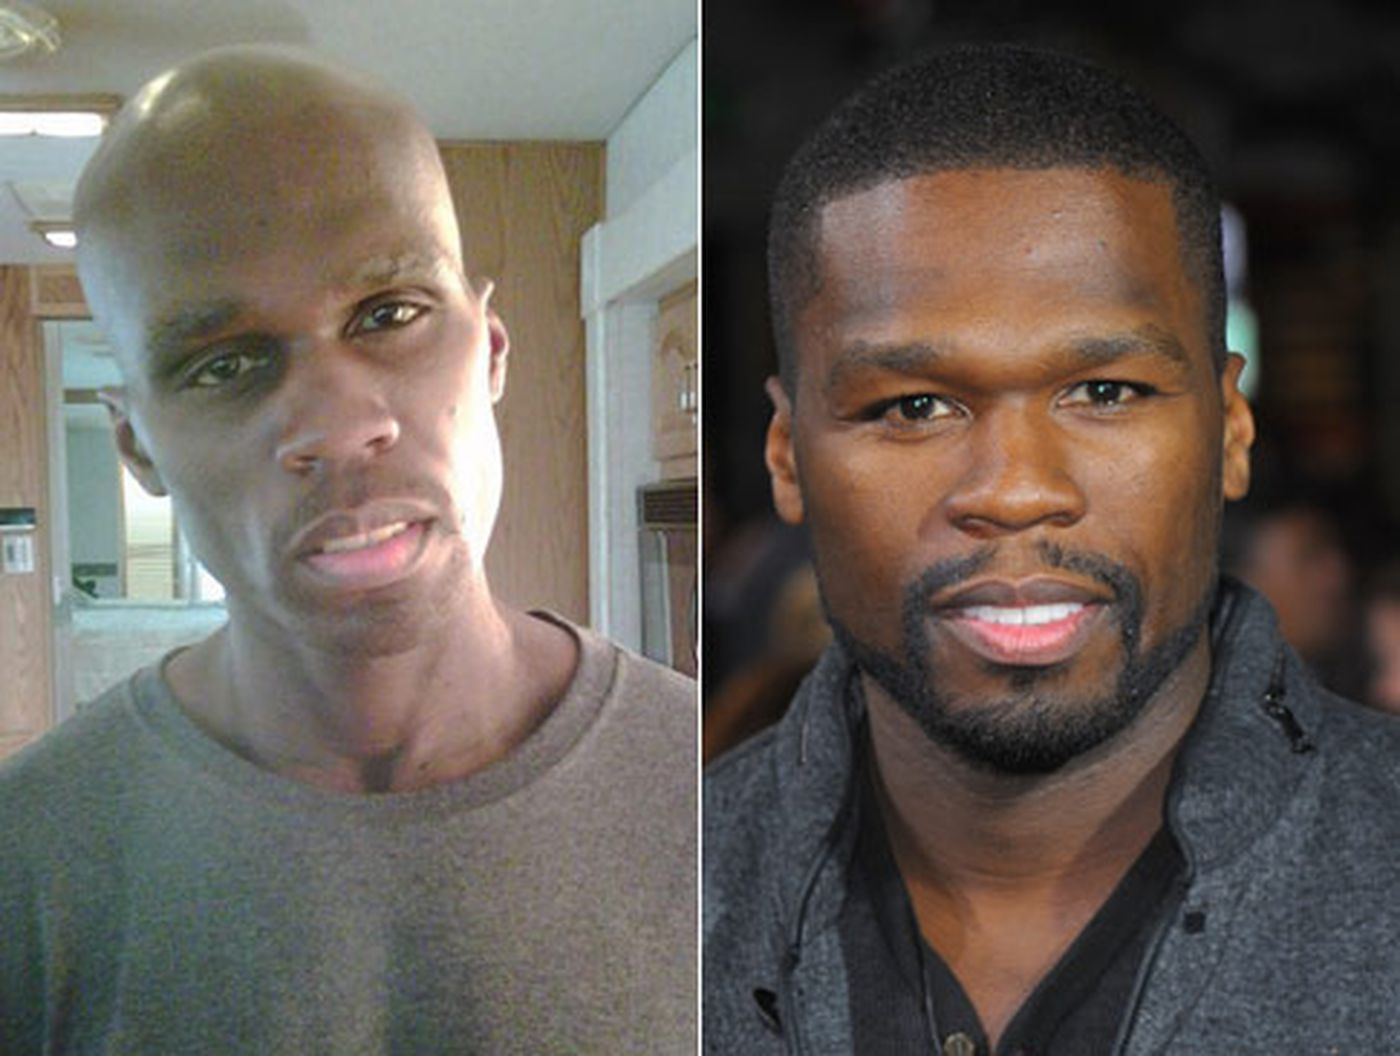 50 cent before and after